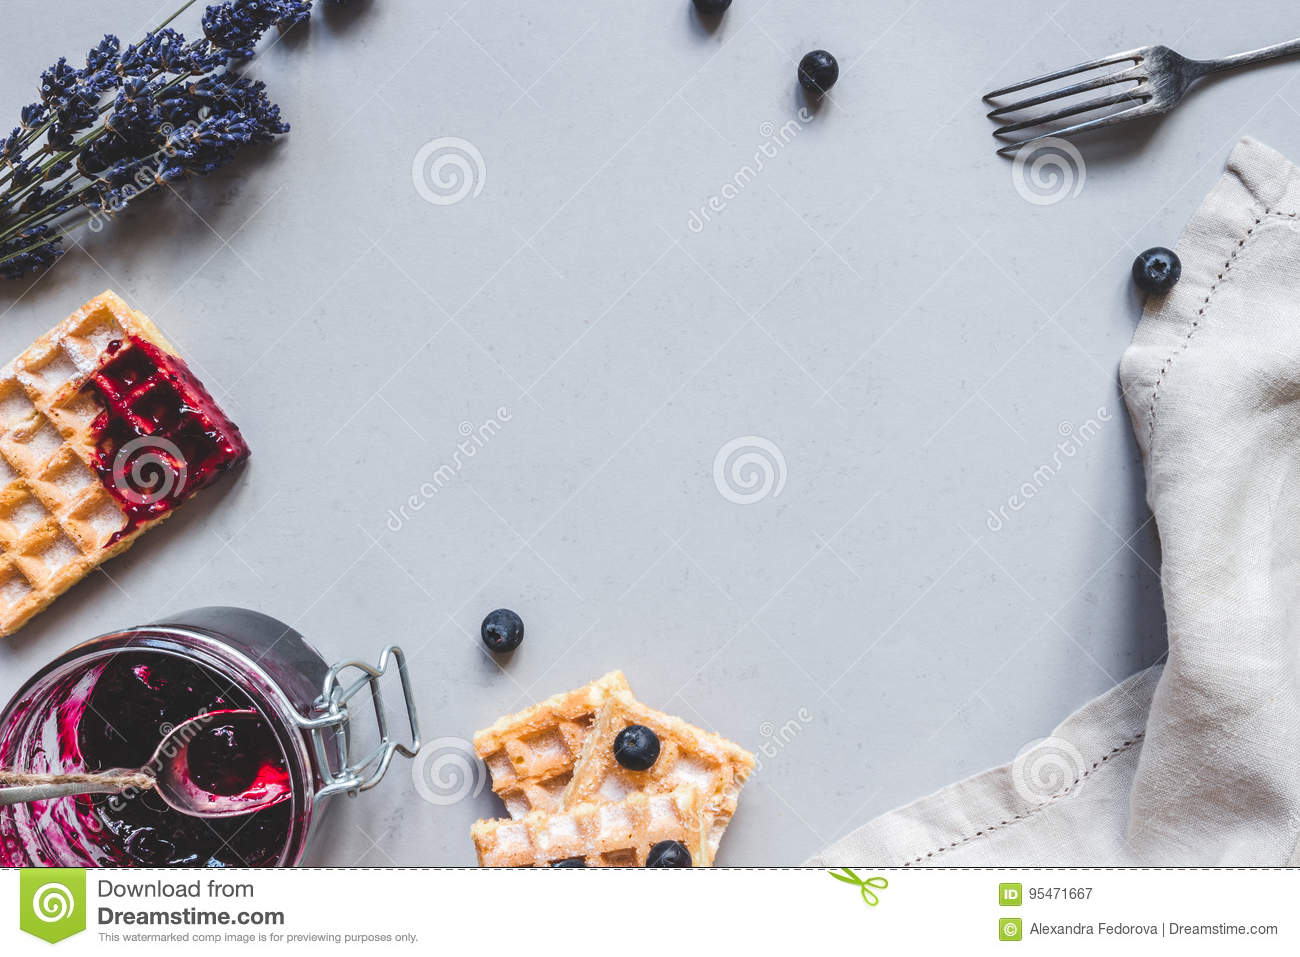 Homemade belgian waffles with blueberries and jam on the light blue table with copy space